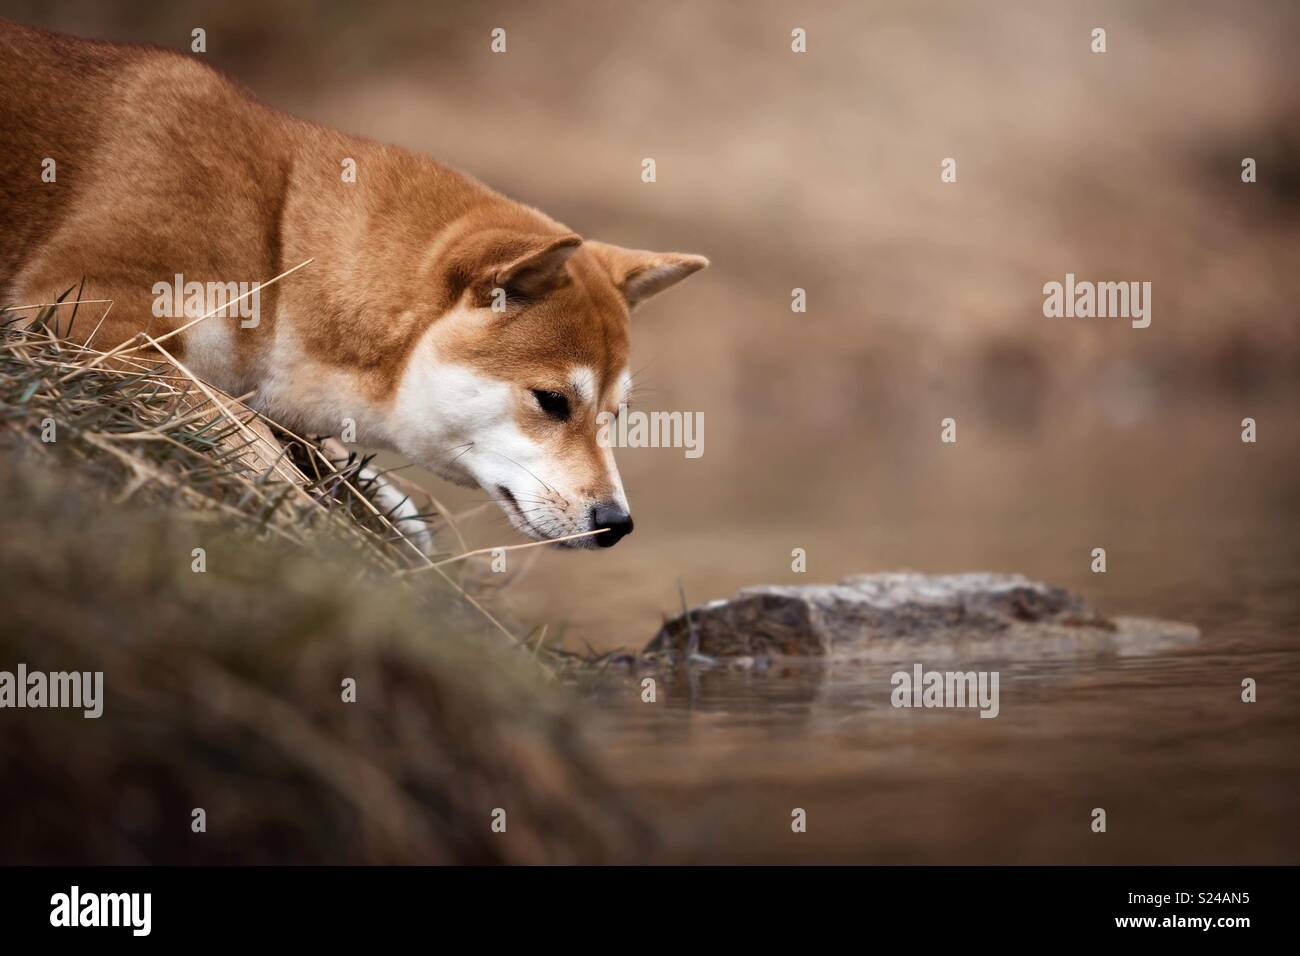 Frogs & Dogs - Stock Image